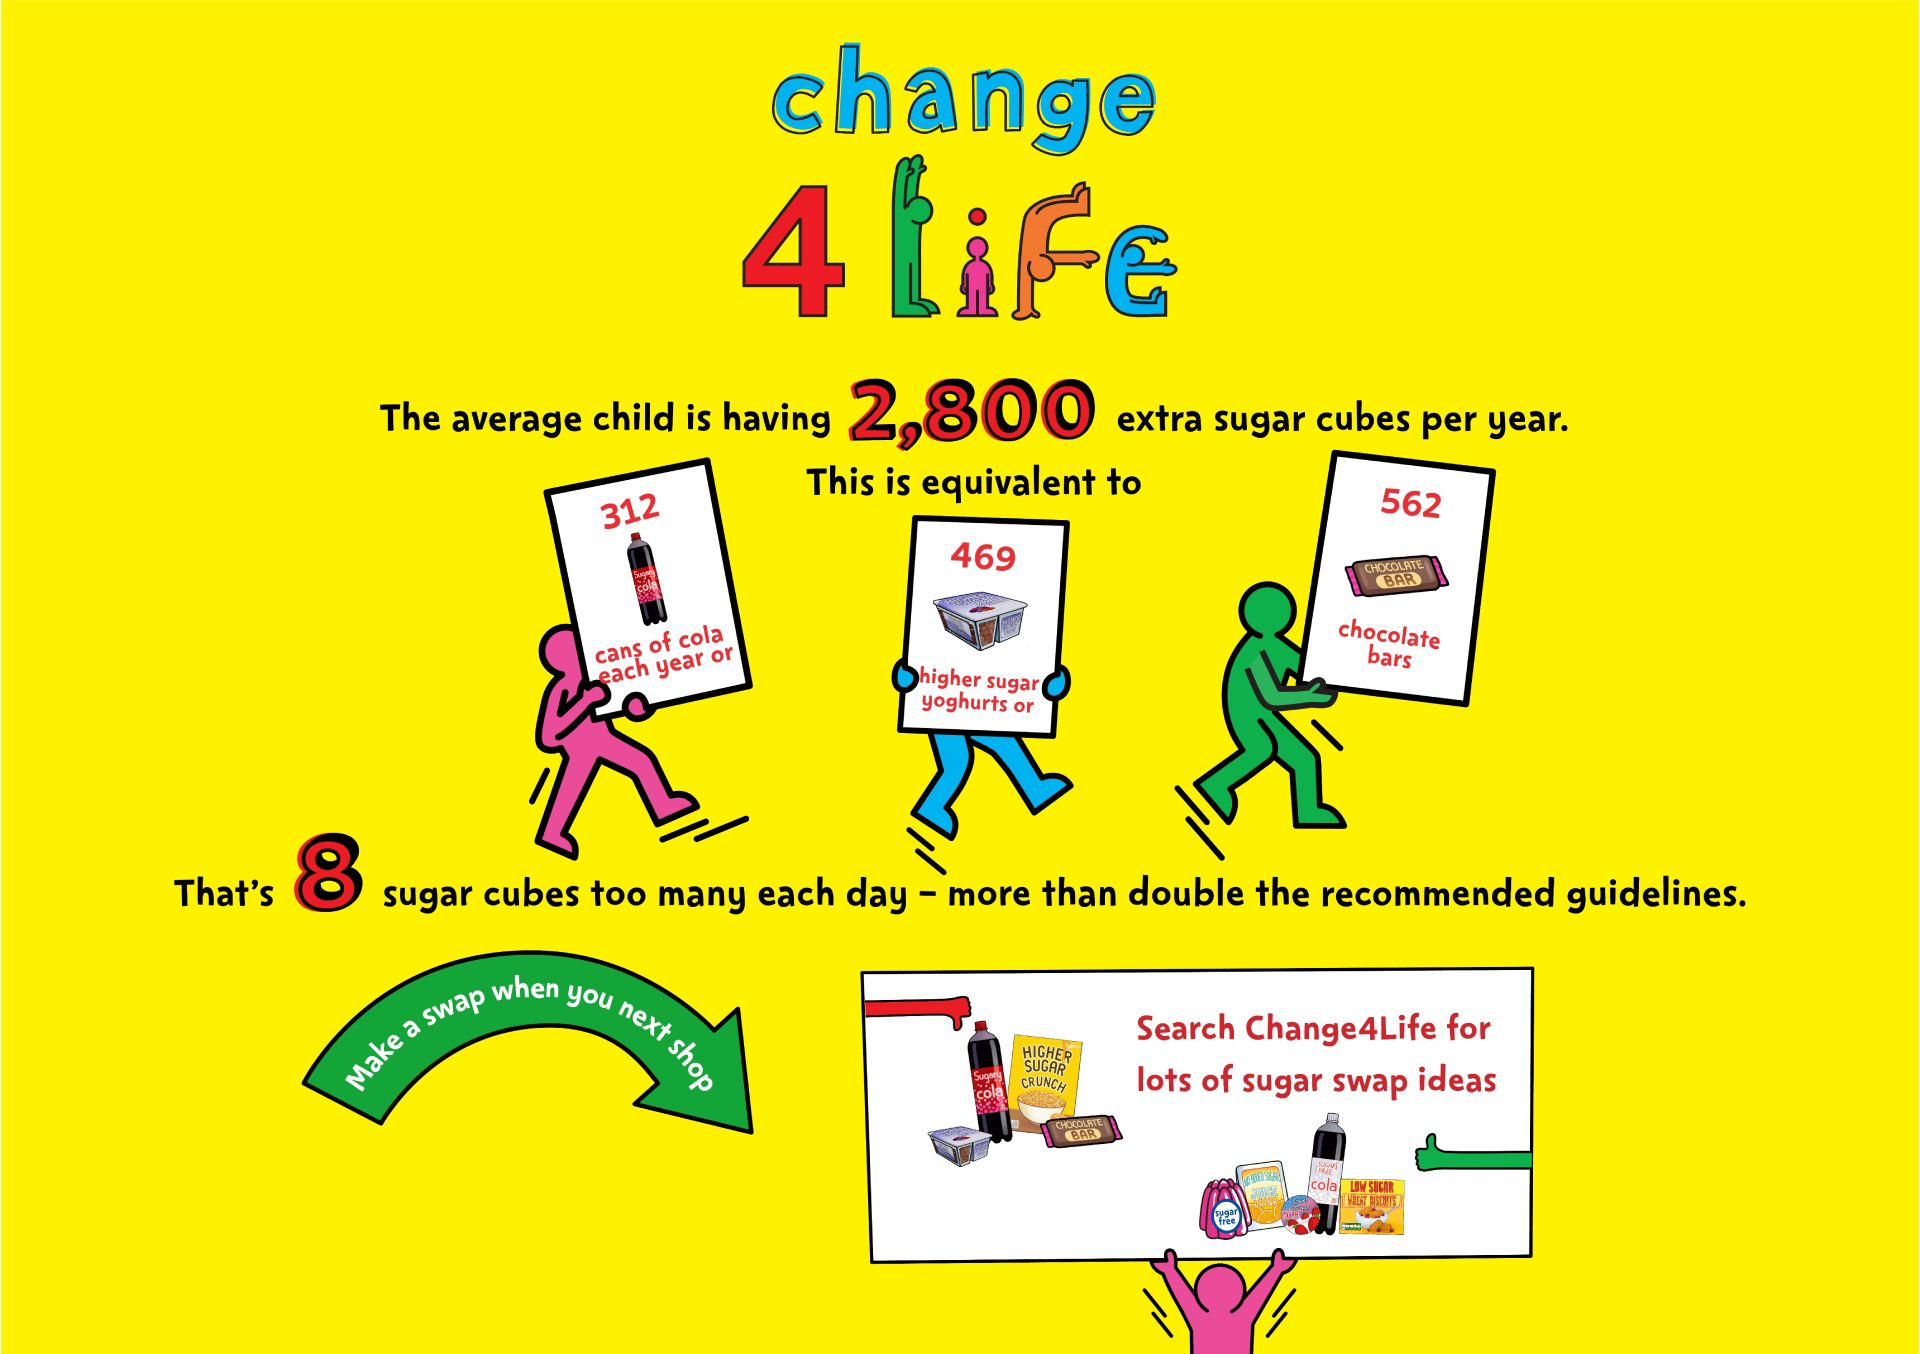 Change for life sugar swaps poster